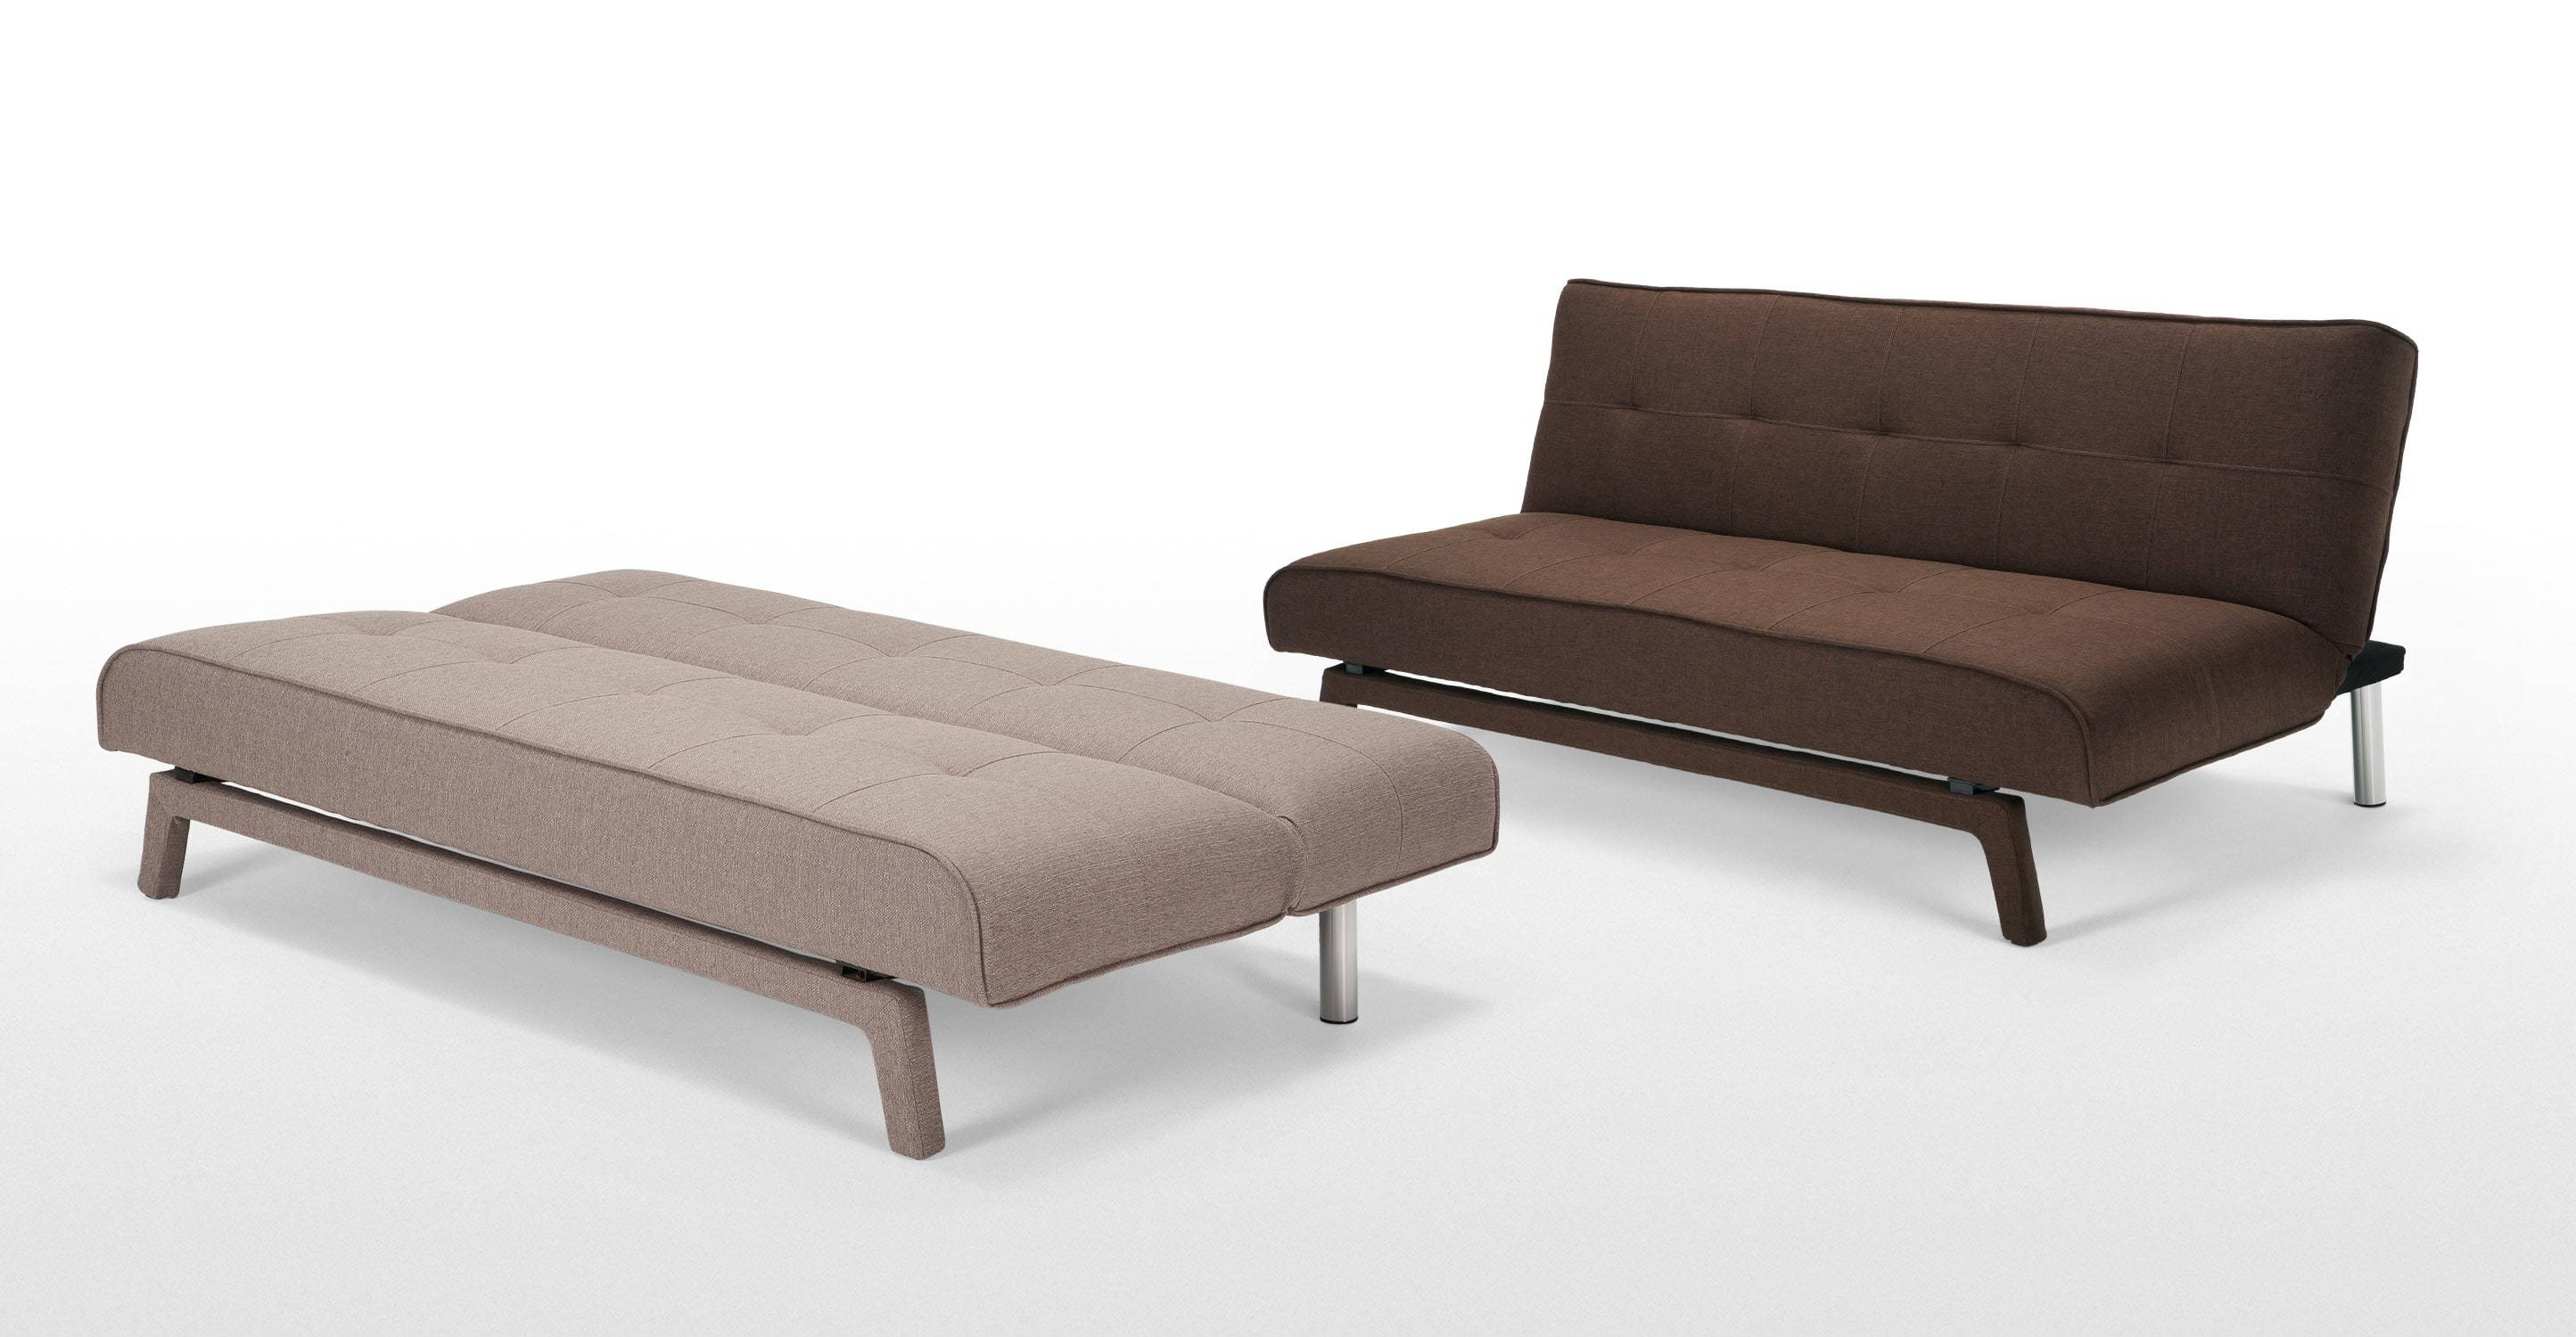 Sofas Center Awesome Sofa Teamnacl Mostable Mattress Ukmost Beds regarding Unusual Sofa (Image 17 of 23)